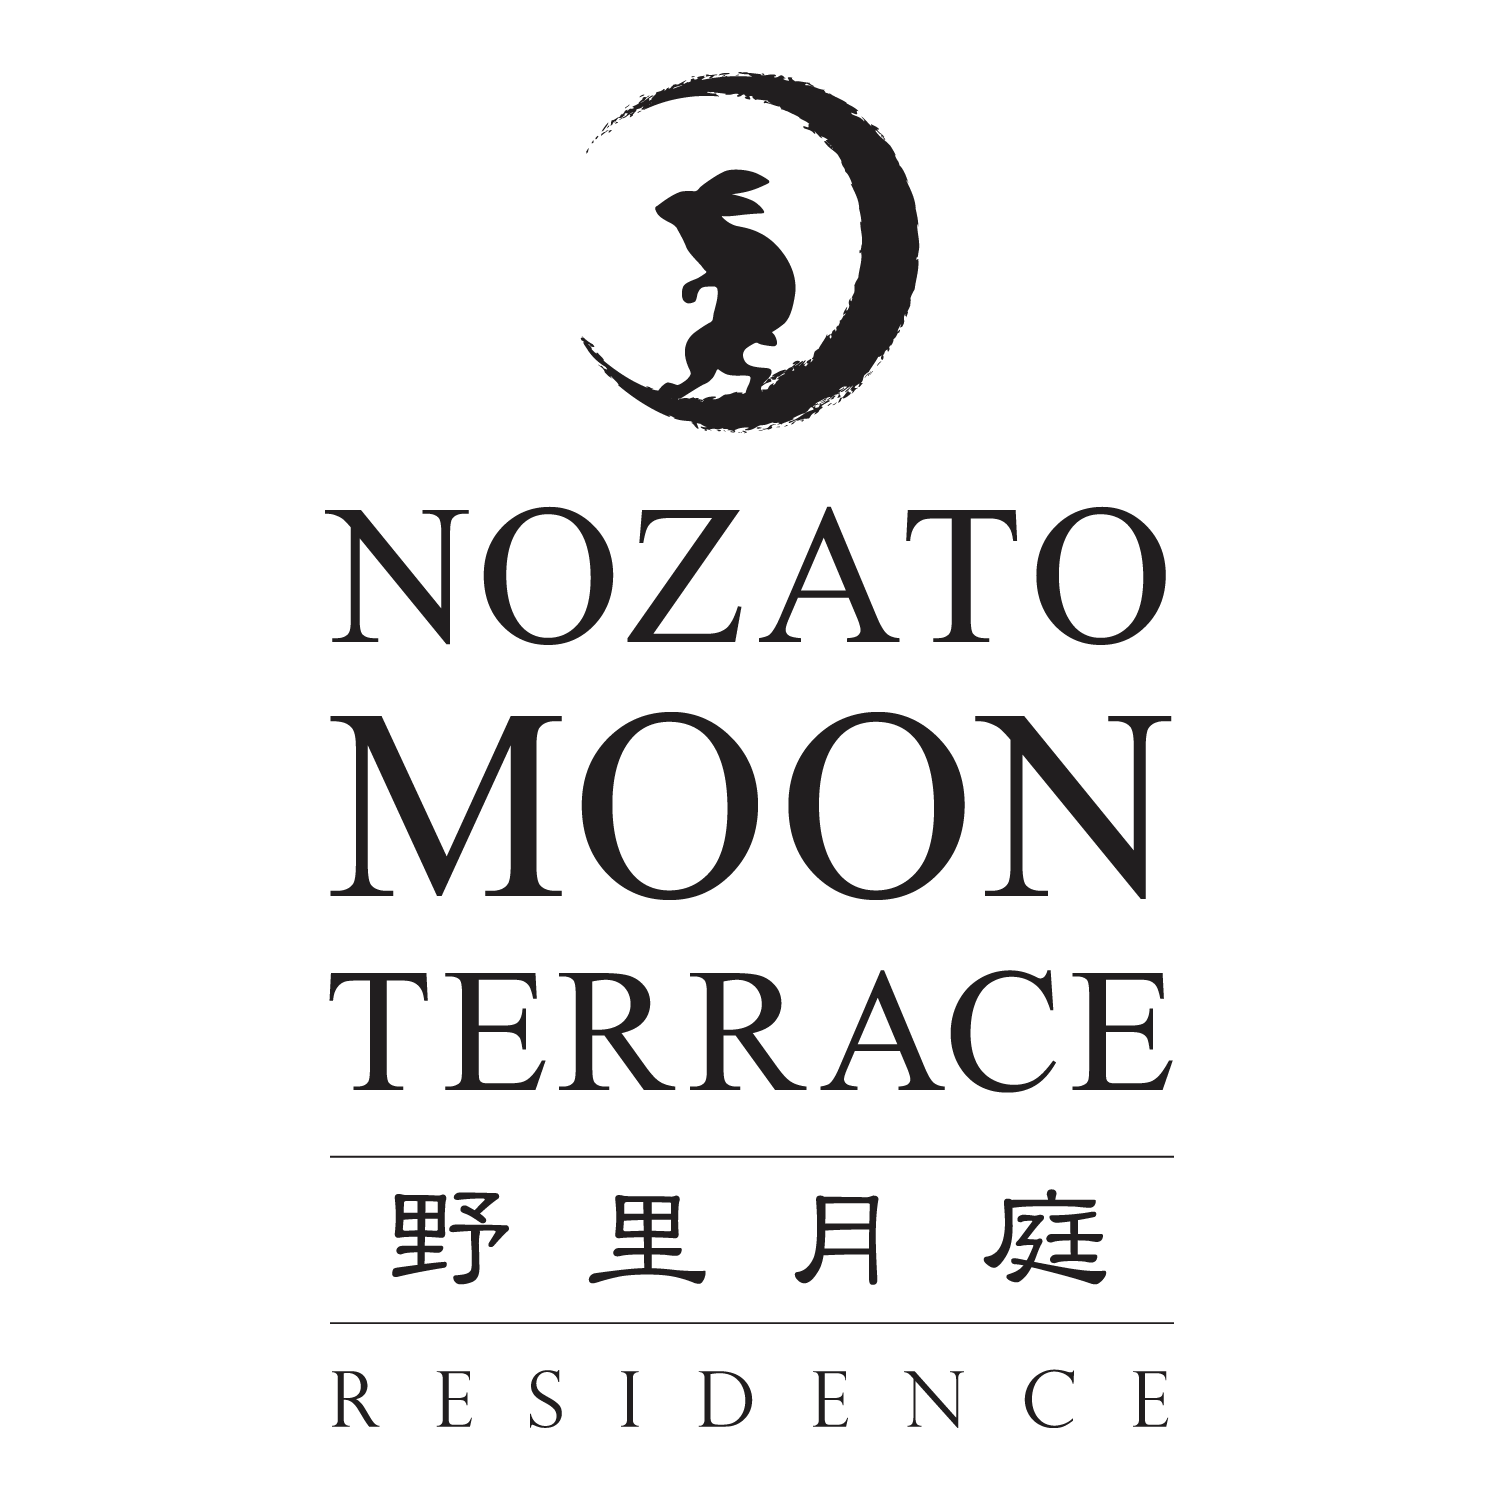 Nozato Moon Terrace | 野里月庭